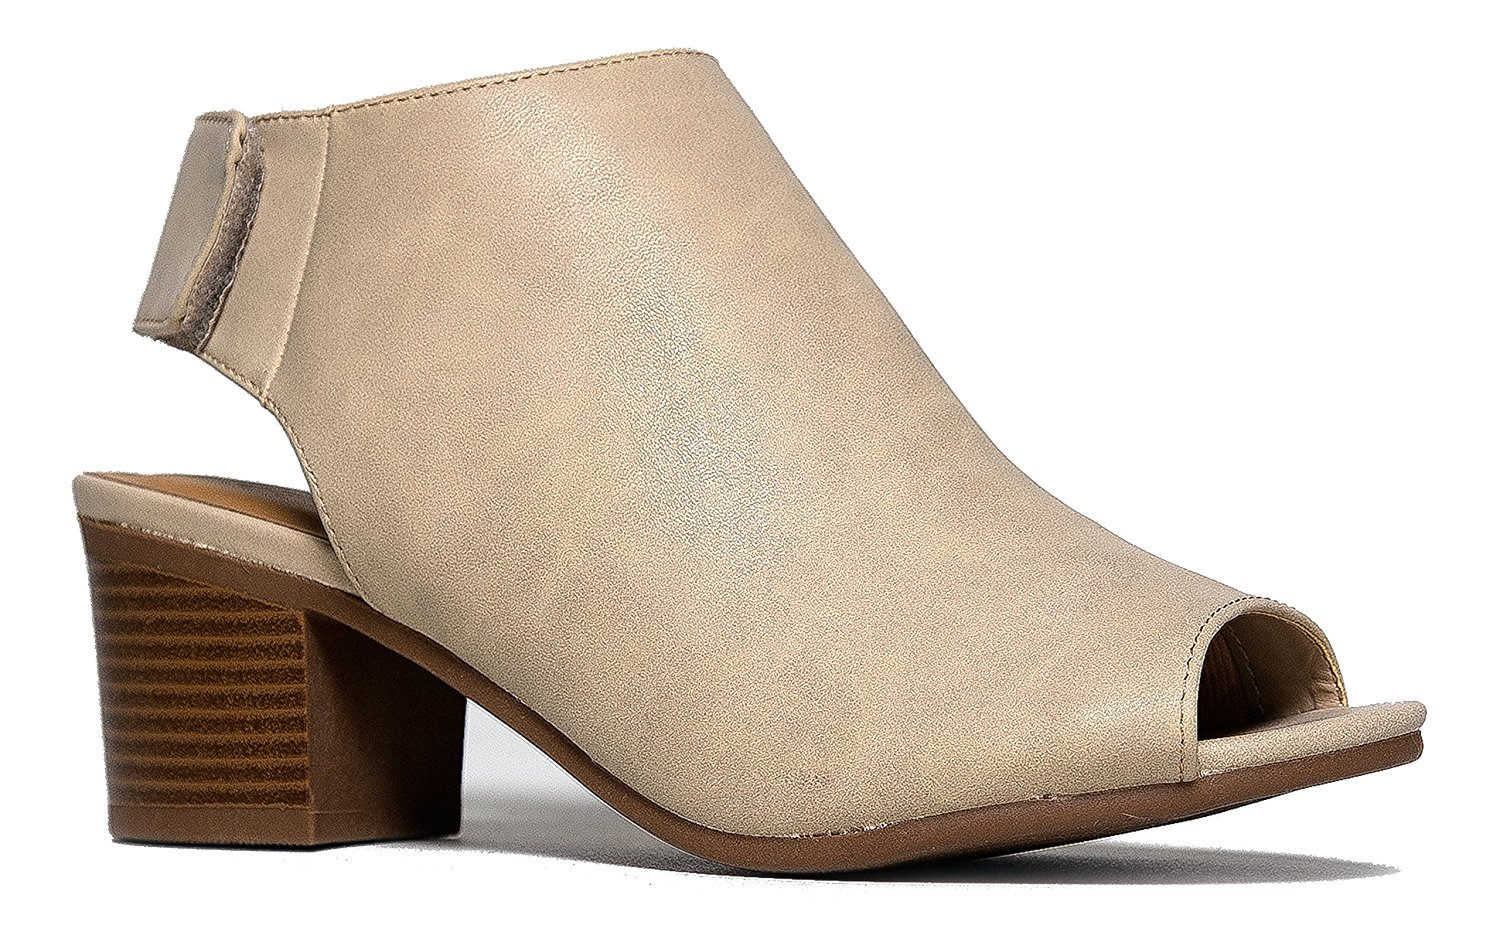 e6ef334917d Get Quotations · J. Adams Peep Toe Bootie - Low Stacked Heel - Open Toe  Ankle Boot Cutout